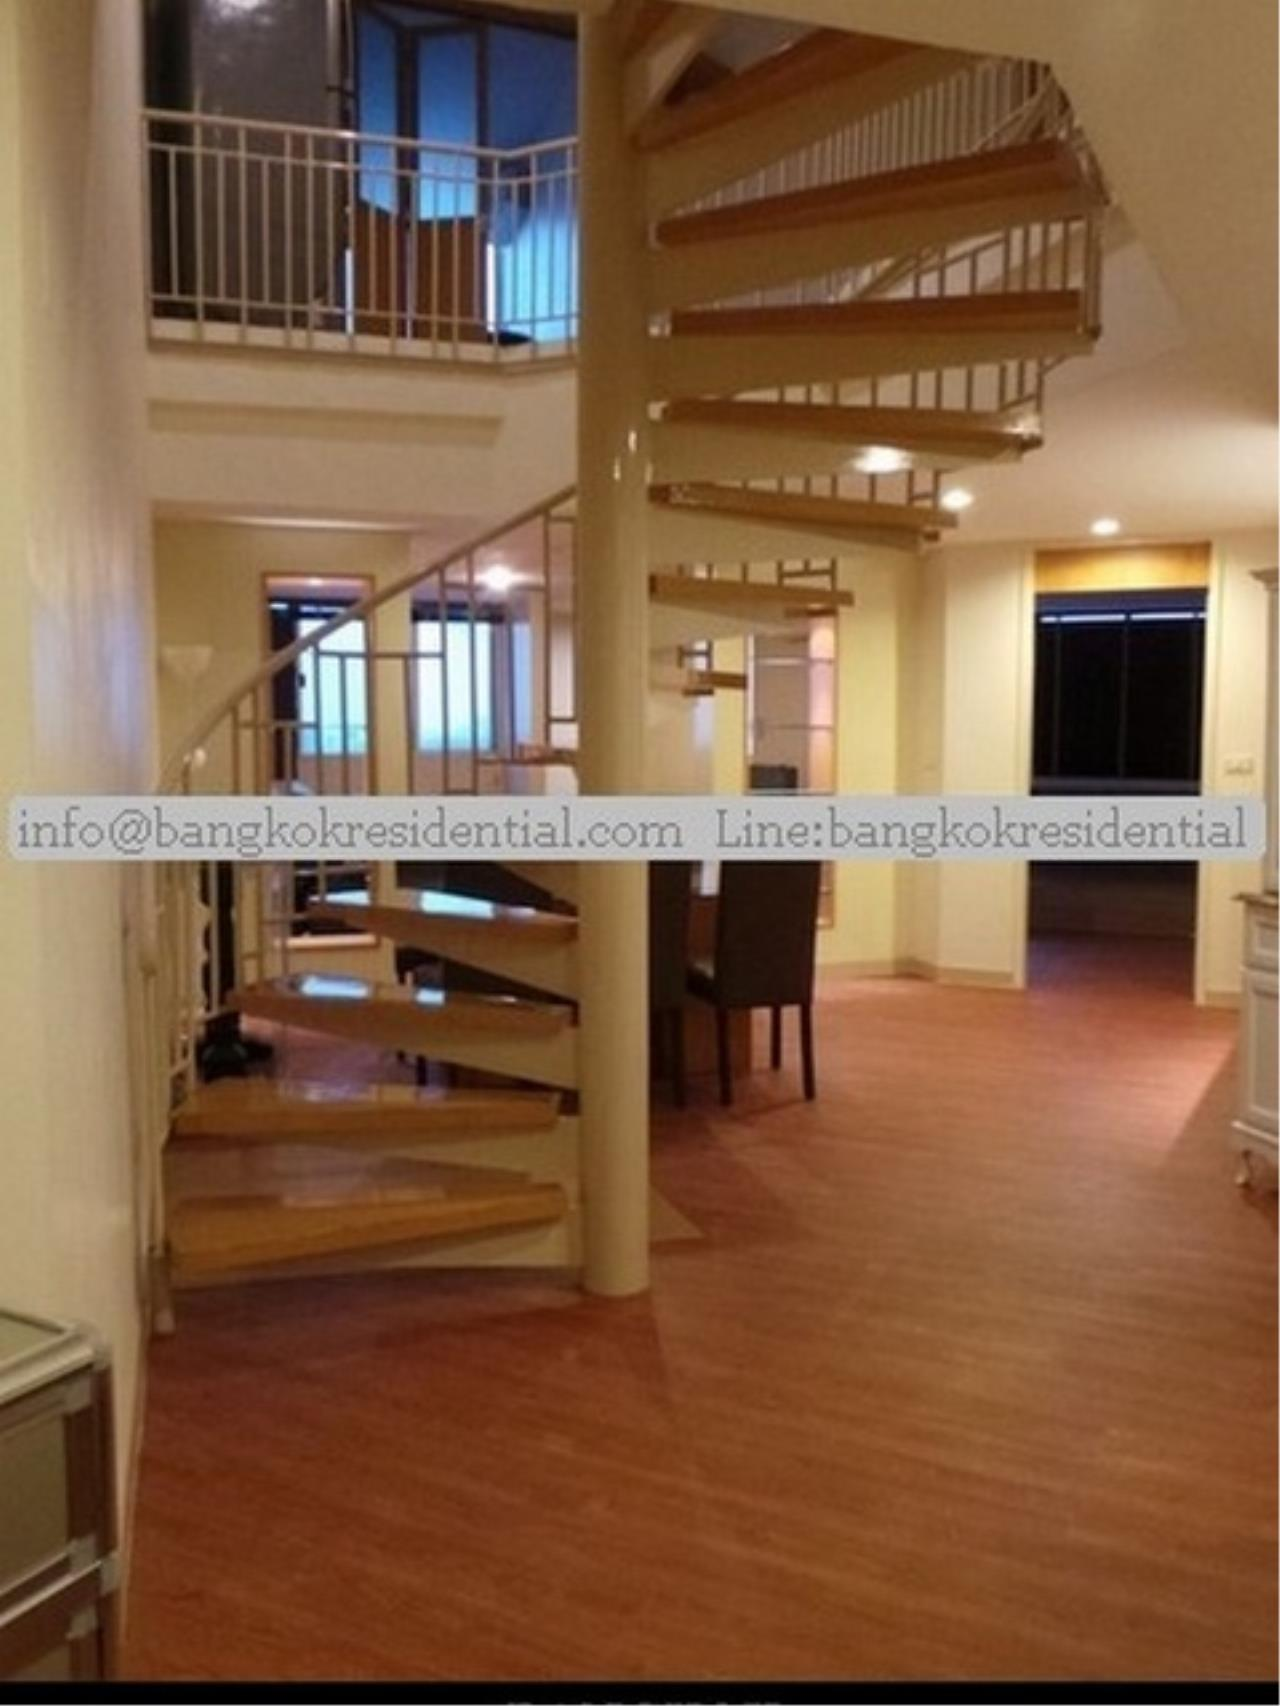 Bangkok Residential Agency's 3BR Tai Ping Tower For Rent (BR4448CD) 4